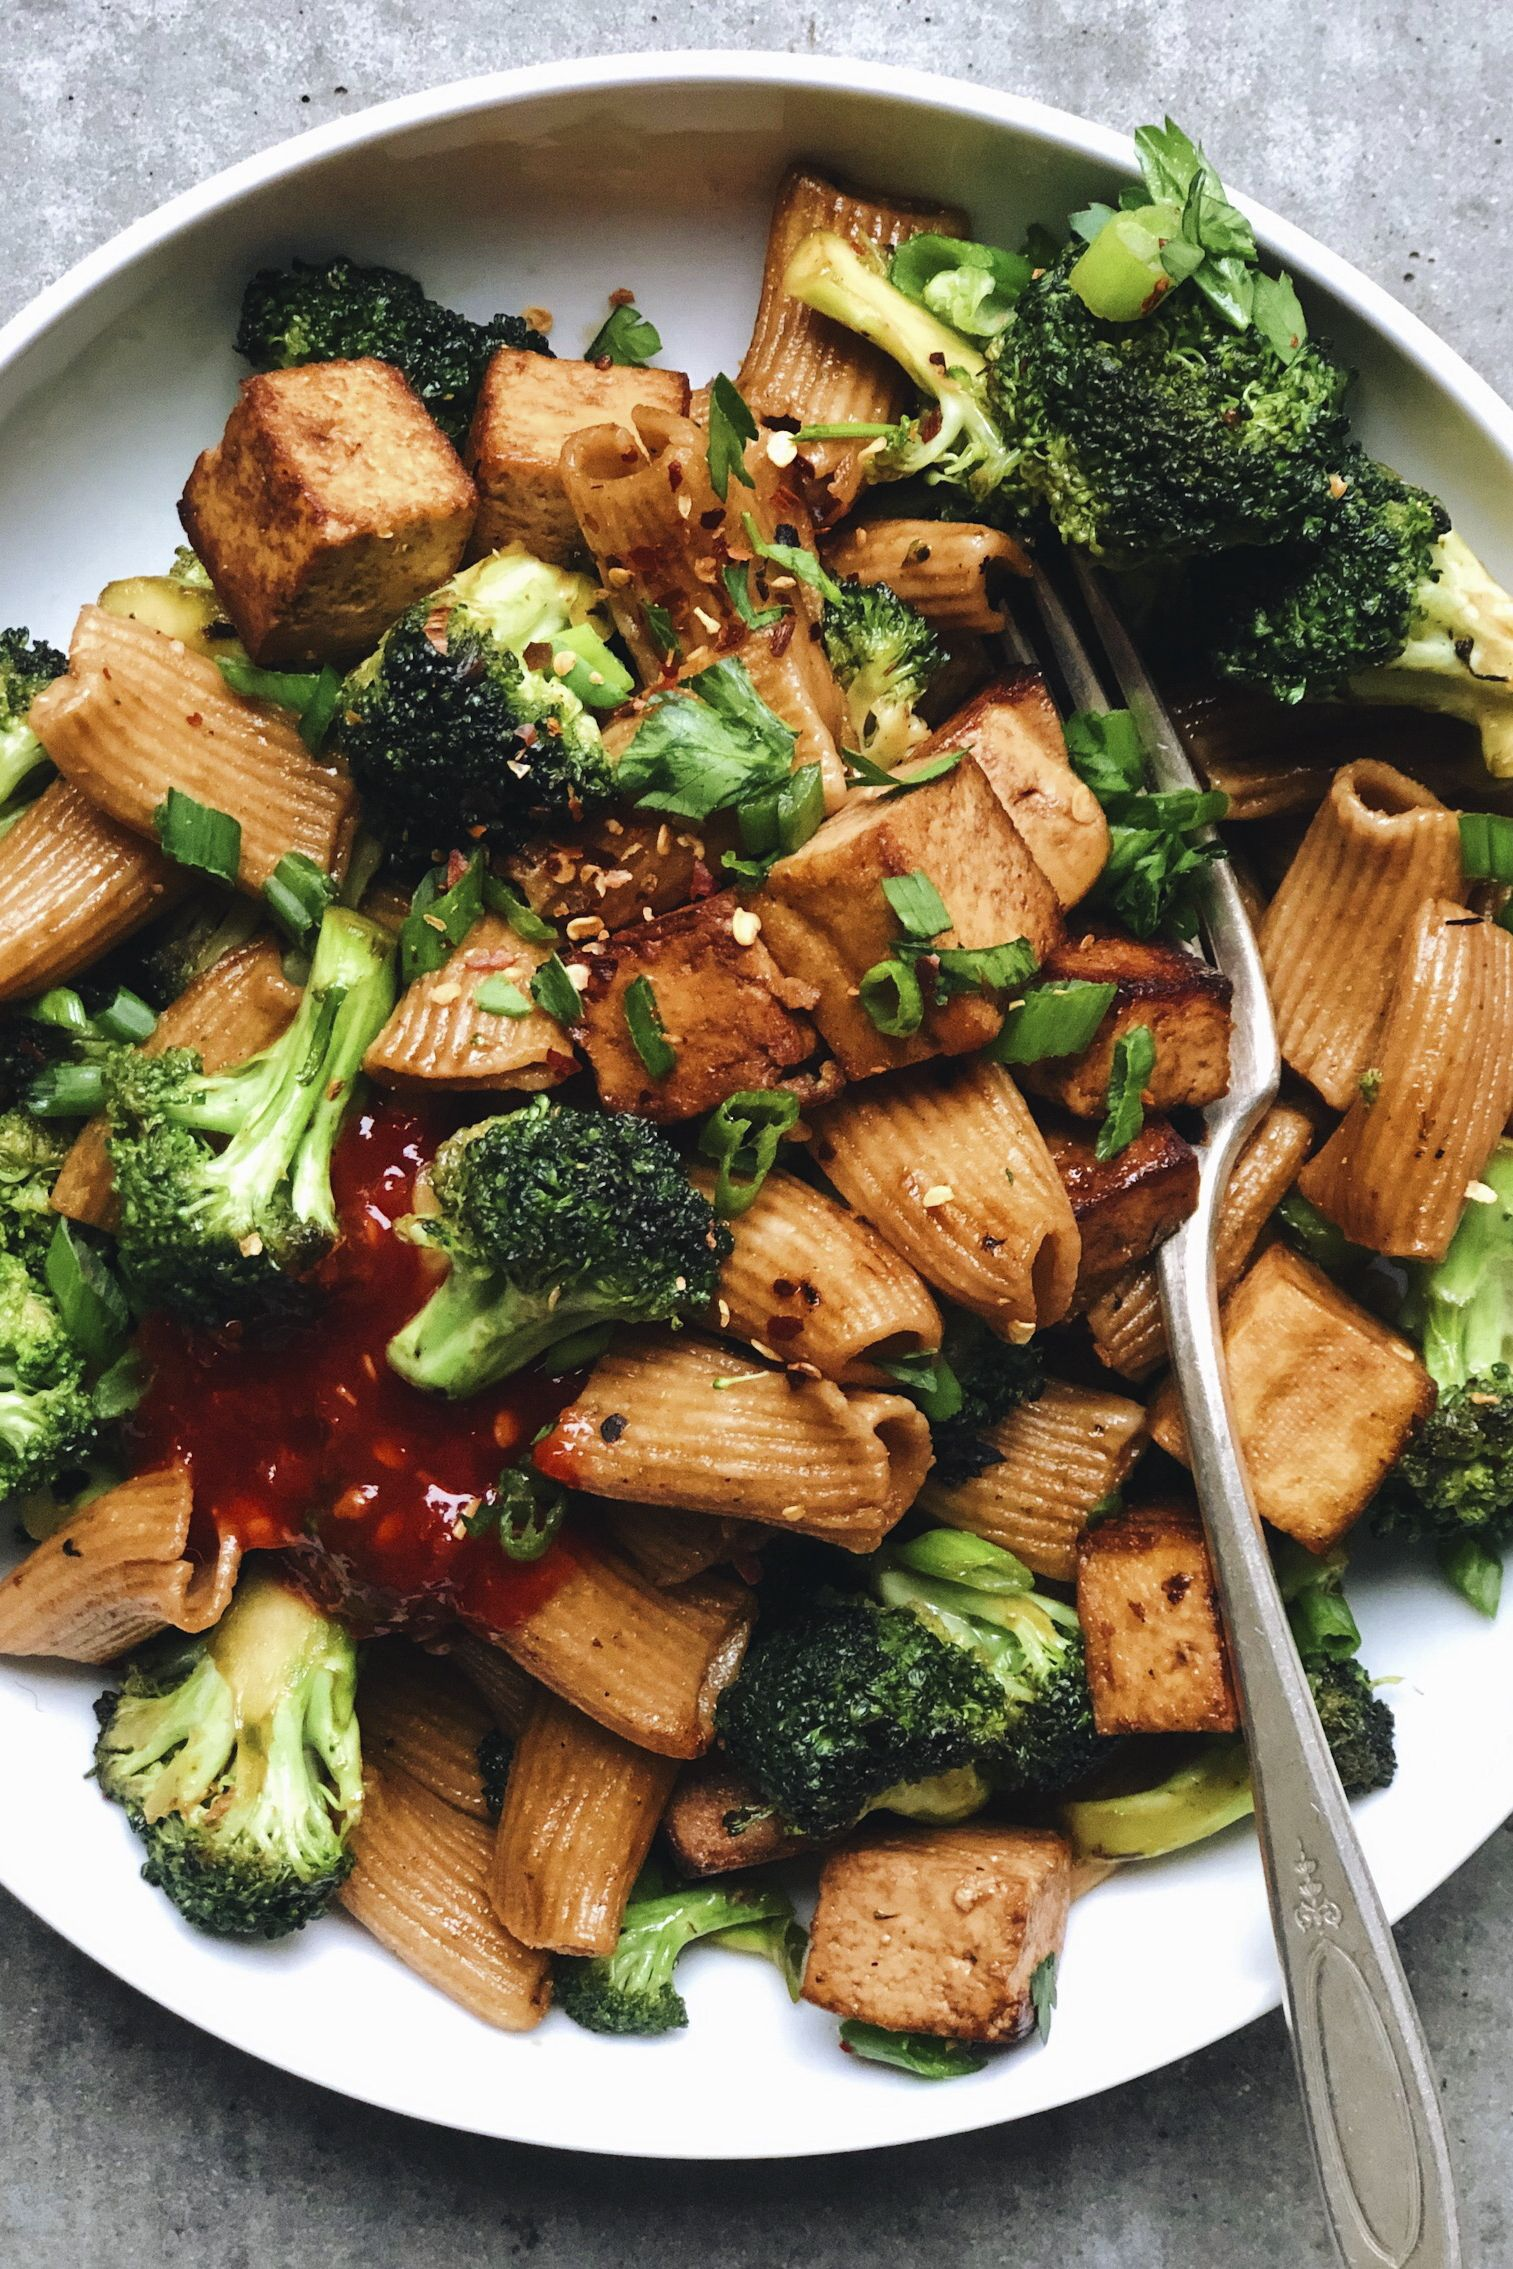 30 Minute Broccoli Tofu Pasta Stir Fry In Pursuit Of More Healthy Pasta Recipes Food Combining Tofu Pasta